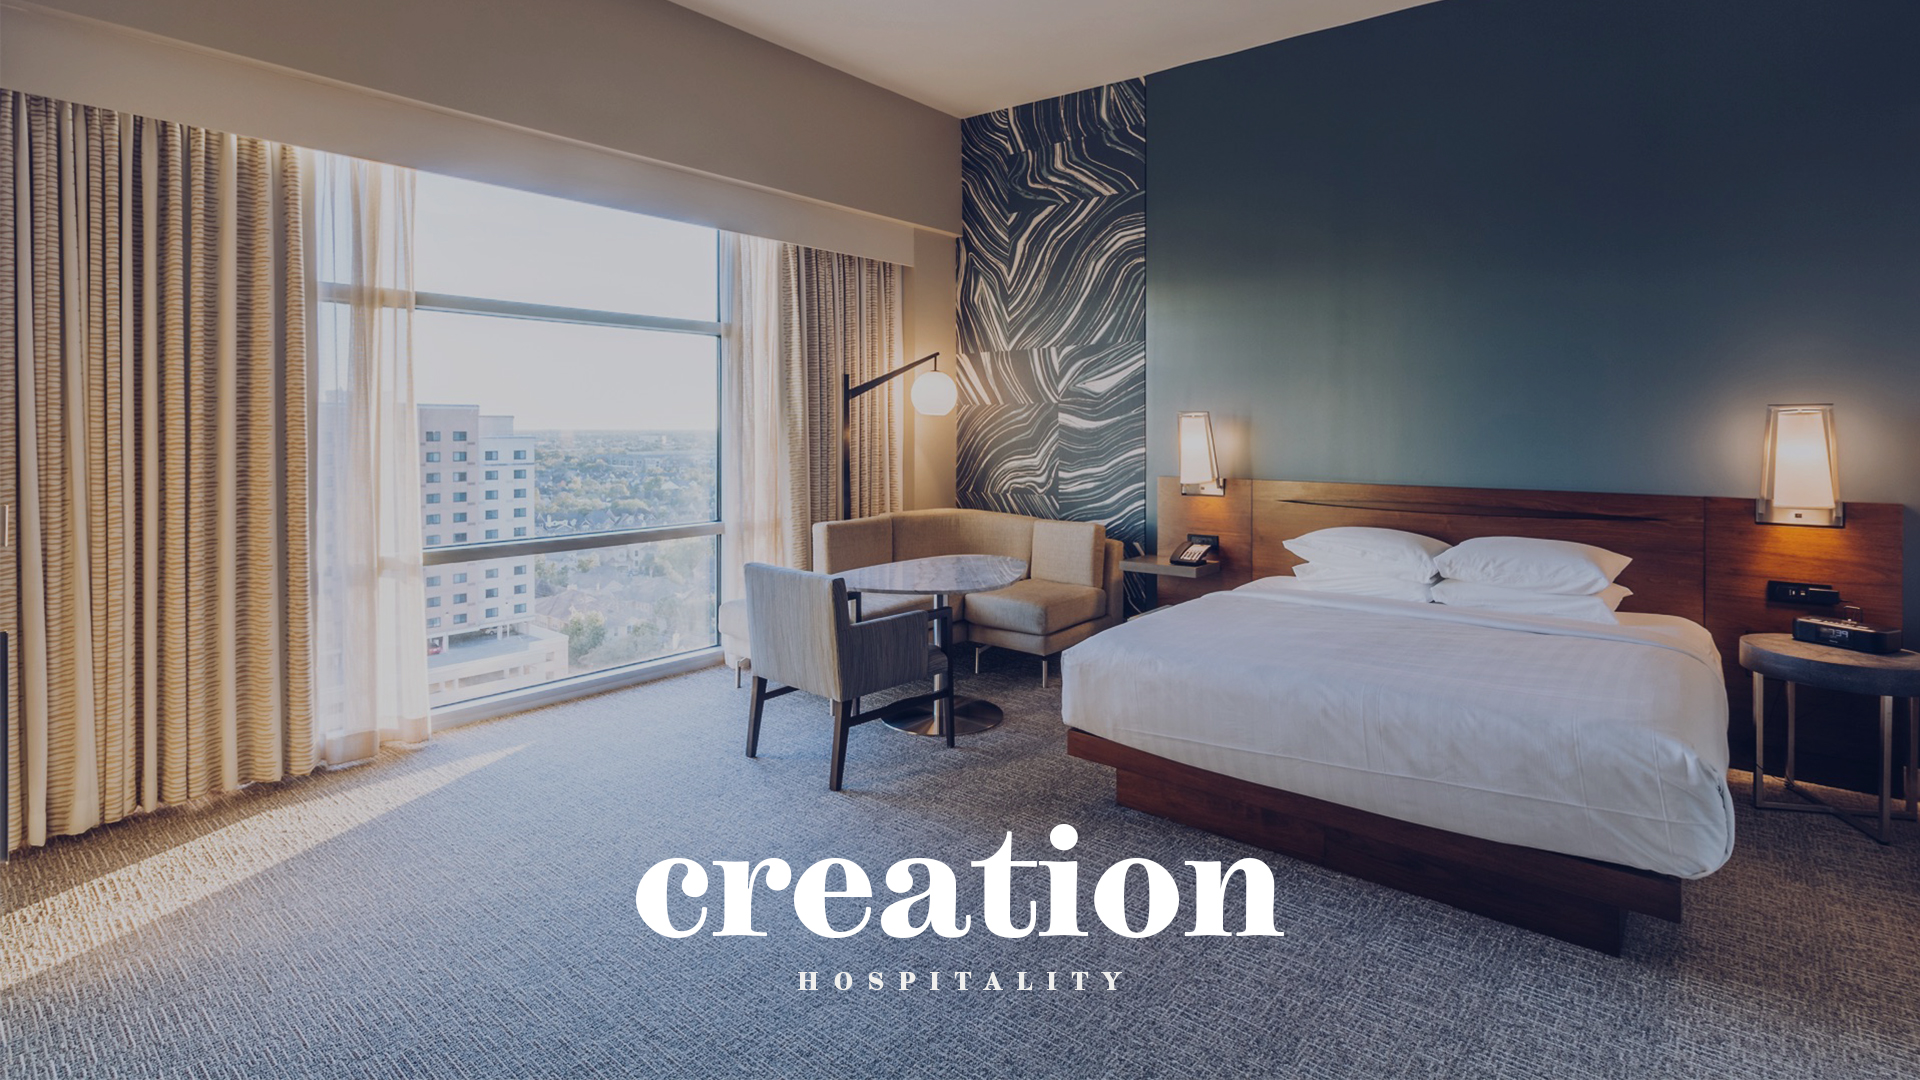 Creation Hospitality Website Design Preview